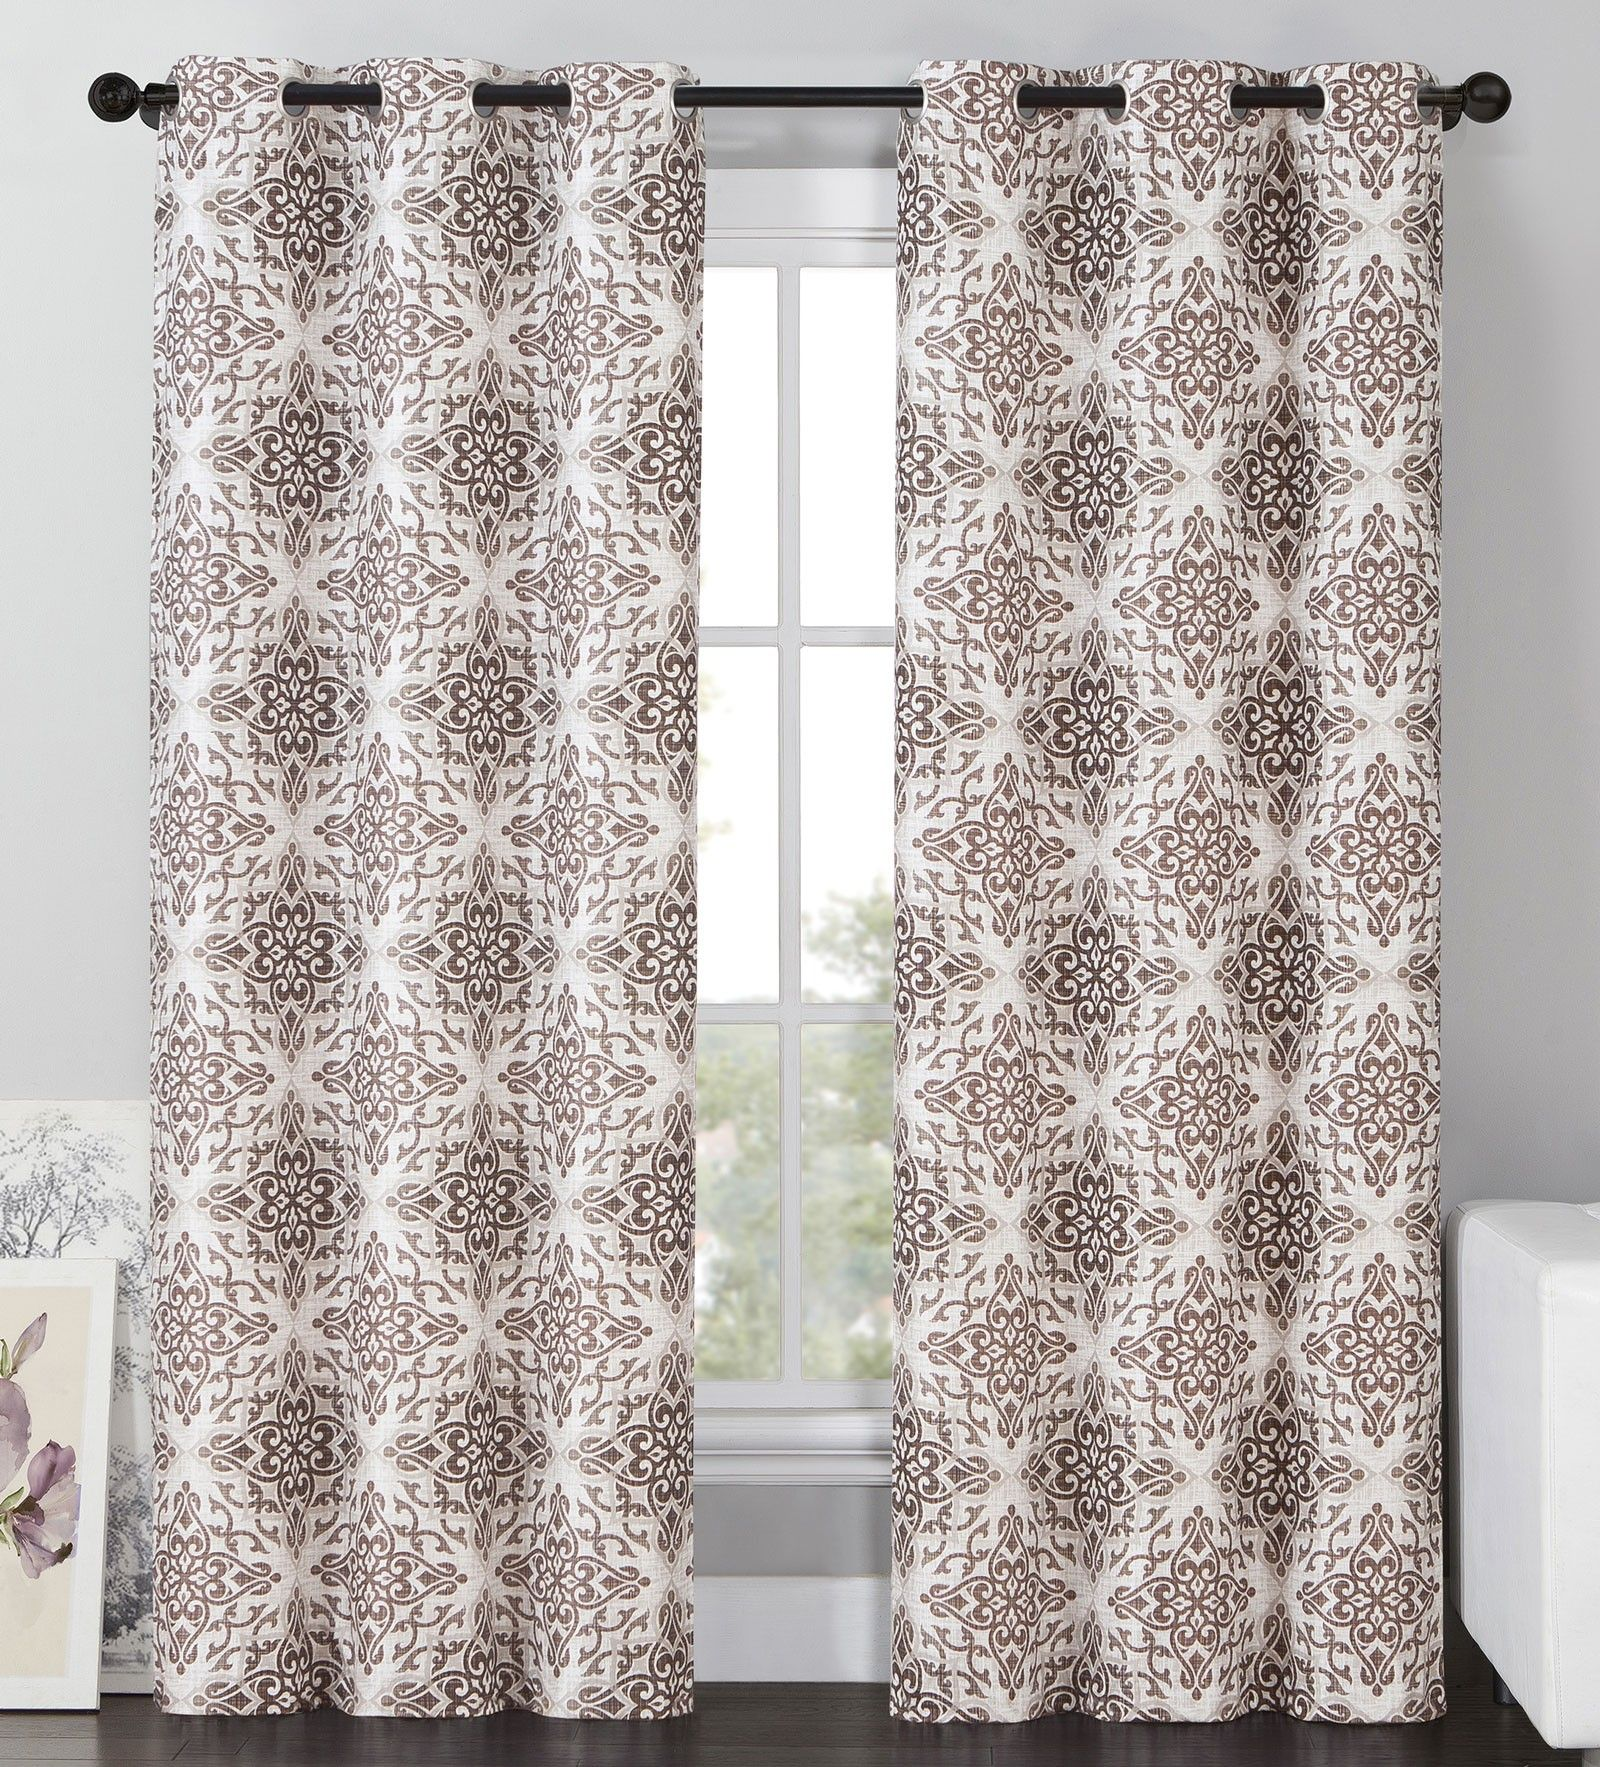 Curtain pair overstock shopping great deals on lights out curtains - Vcny Sylvia Blackout Window Curtains Grommet Thermal 2 Panel Set Brown Medallion 84 Length